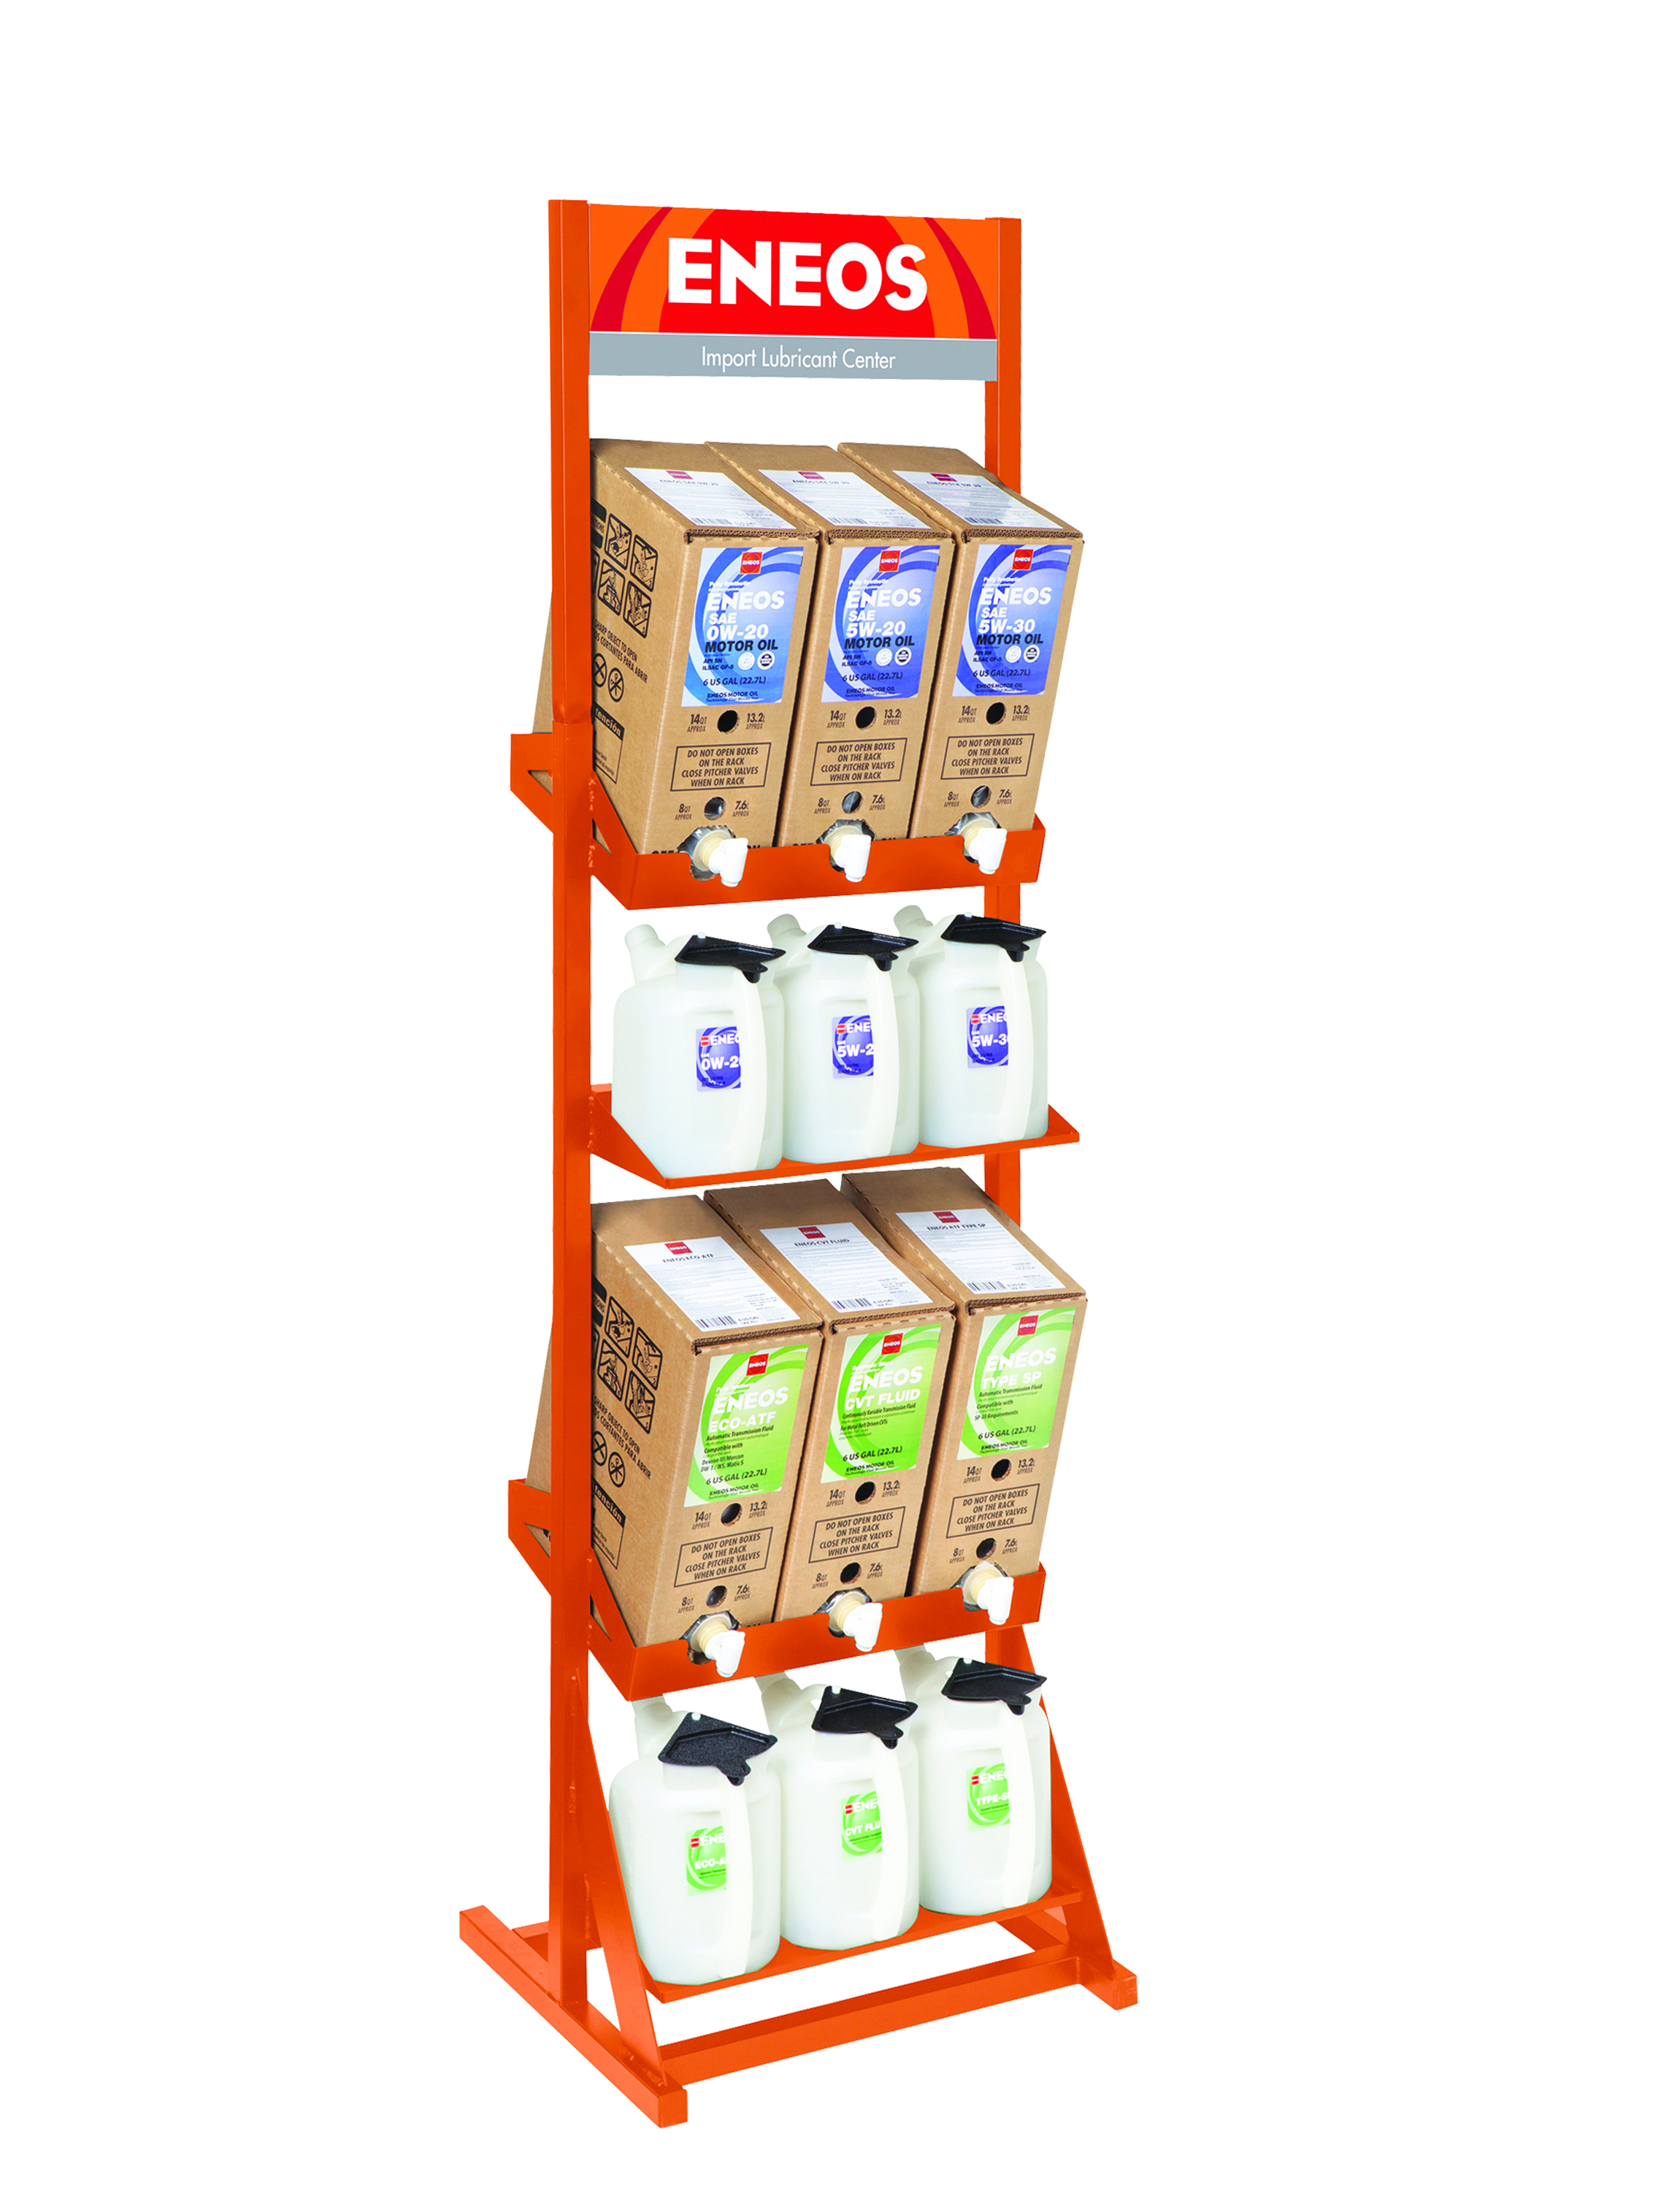 new eneos import lubricant center now available for auto